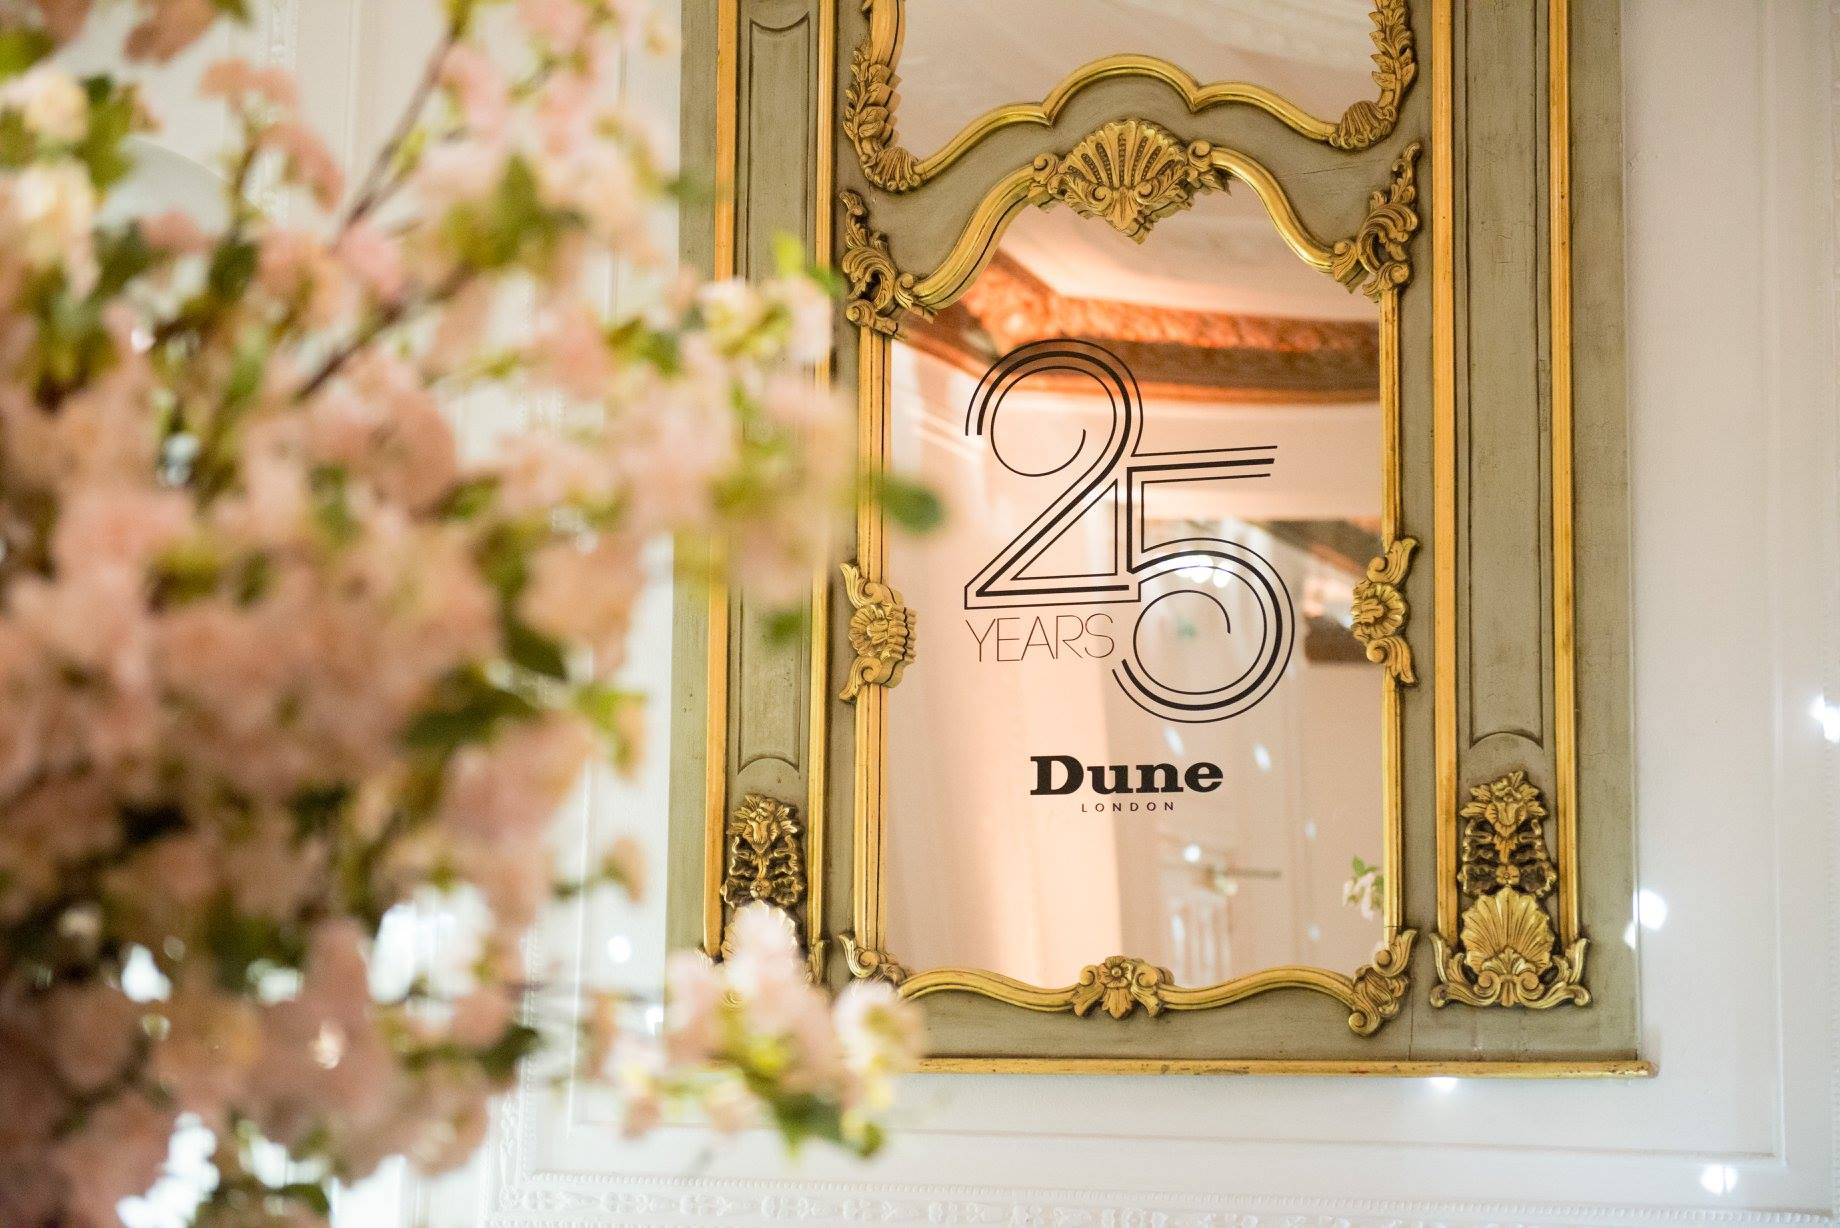 Dune London 25 Years Party